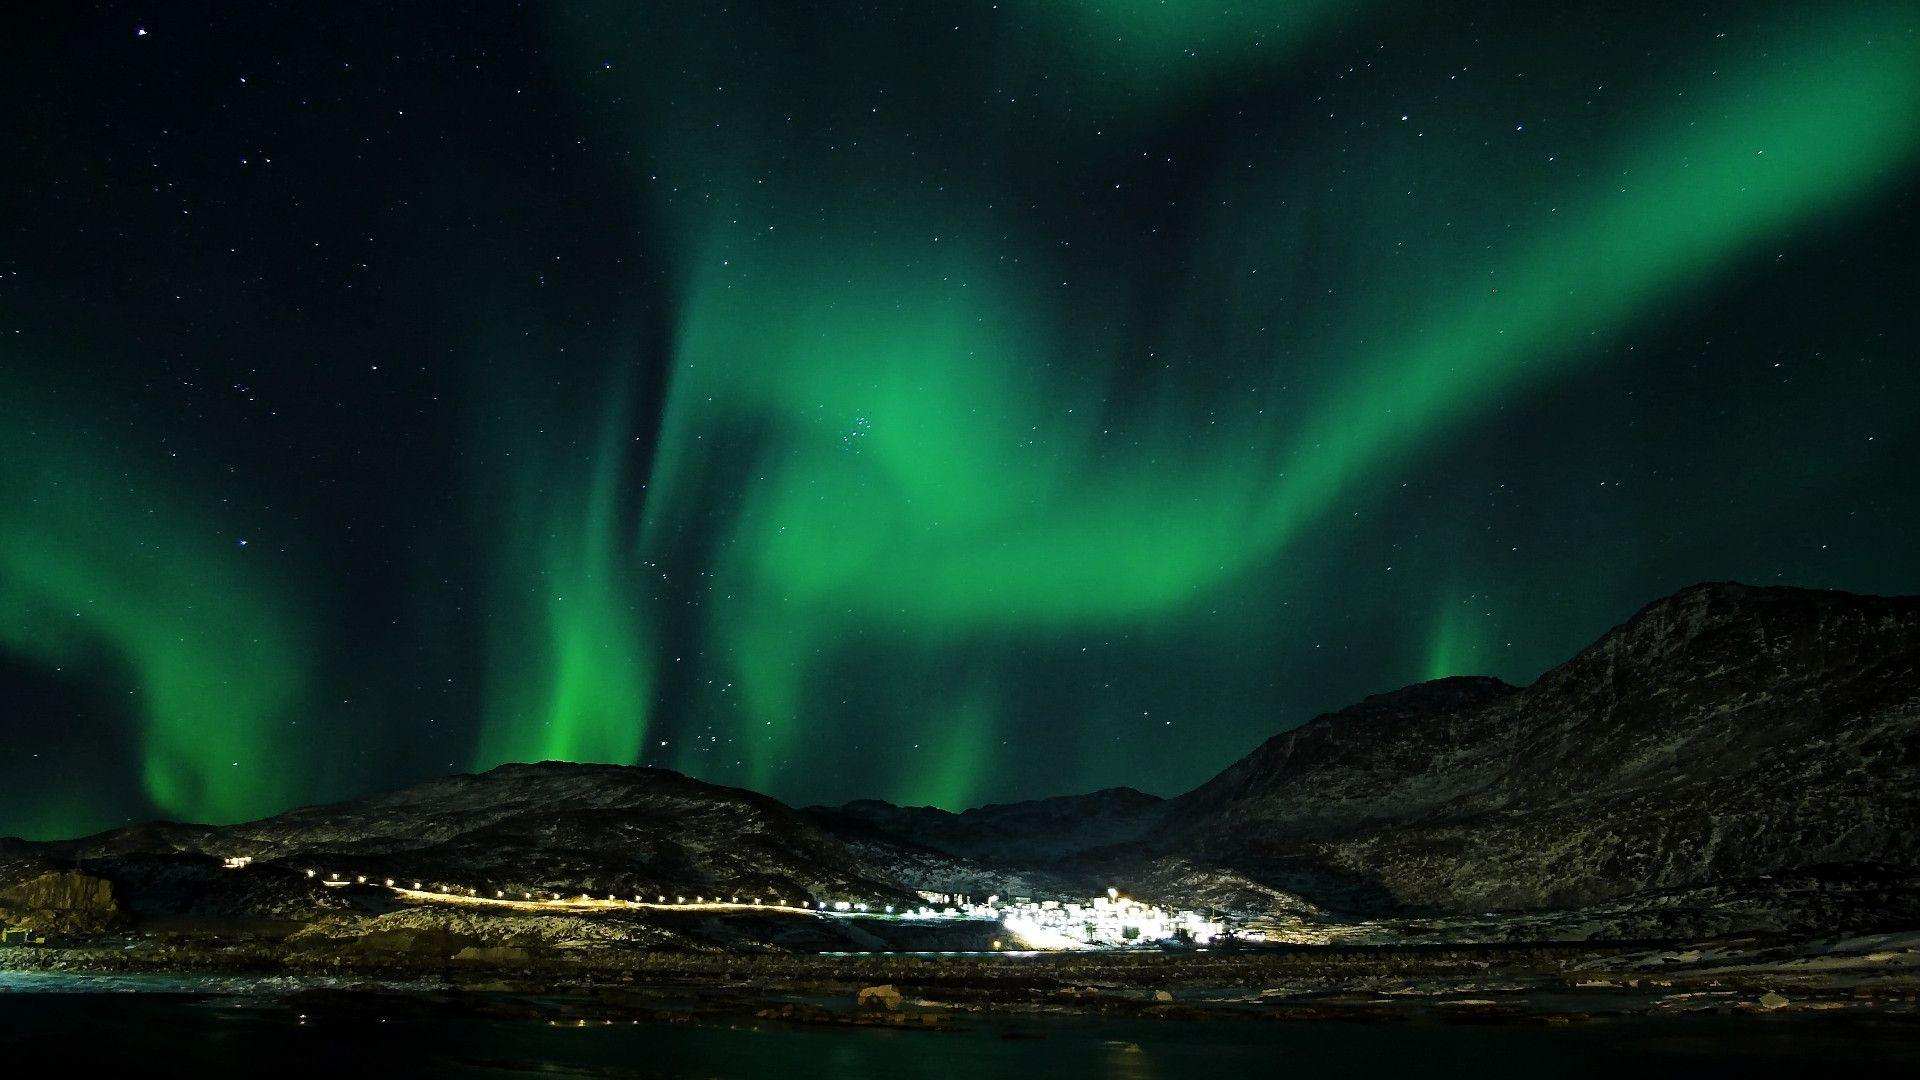 Aurora Borealis over village wallpapers Wide or HD